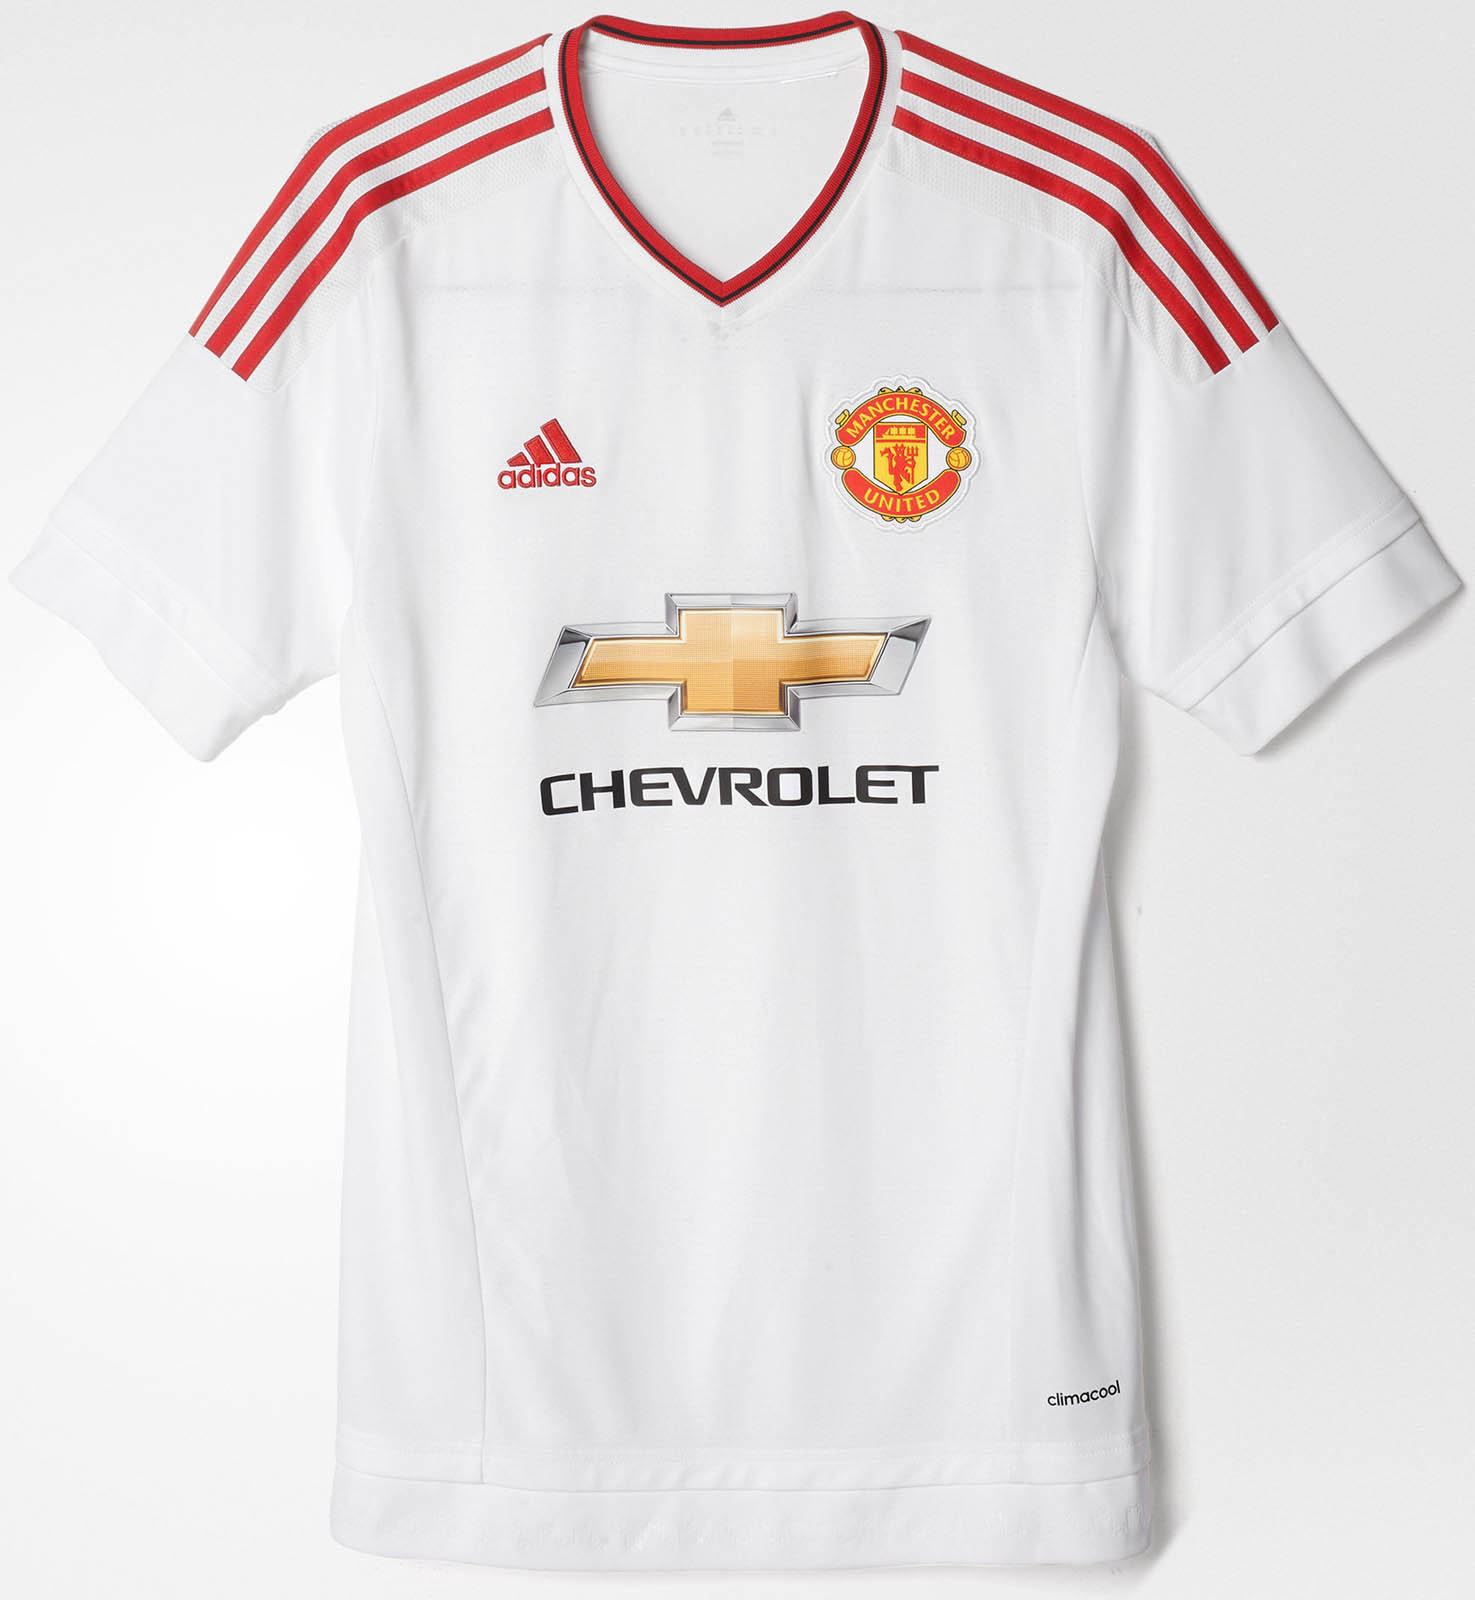 94901a9d1 Adidas Manchester United 15-16 Kits Released - Footy Headlines